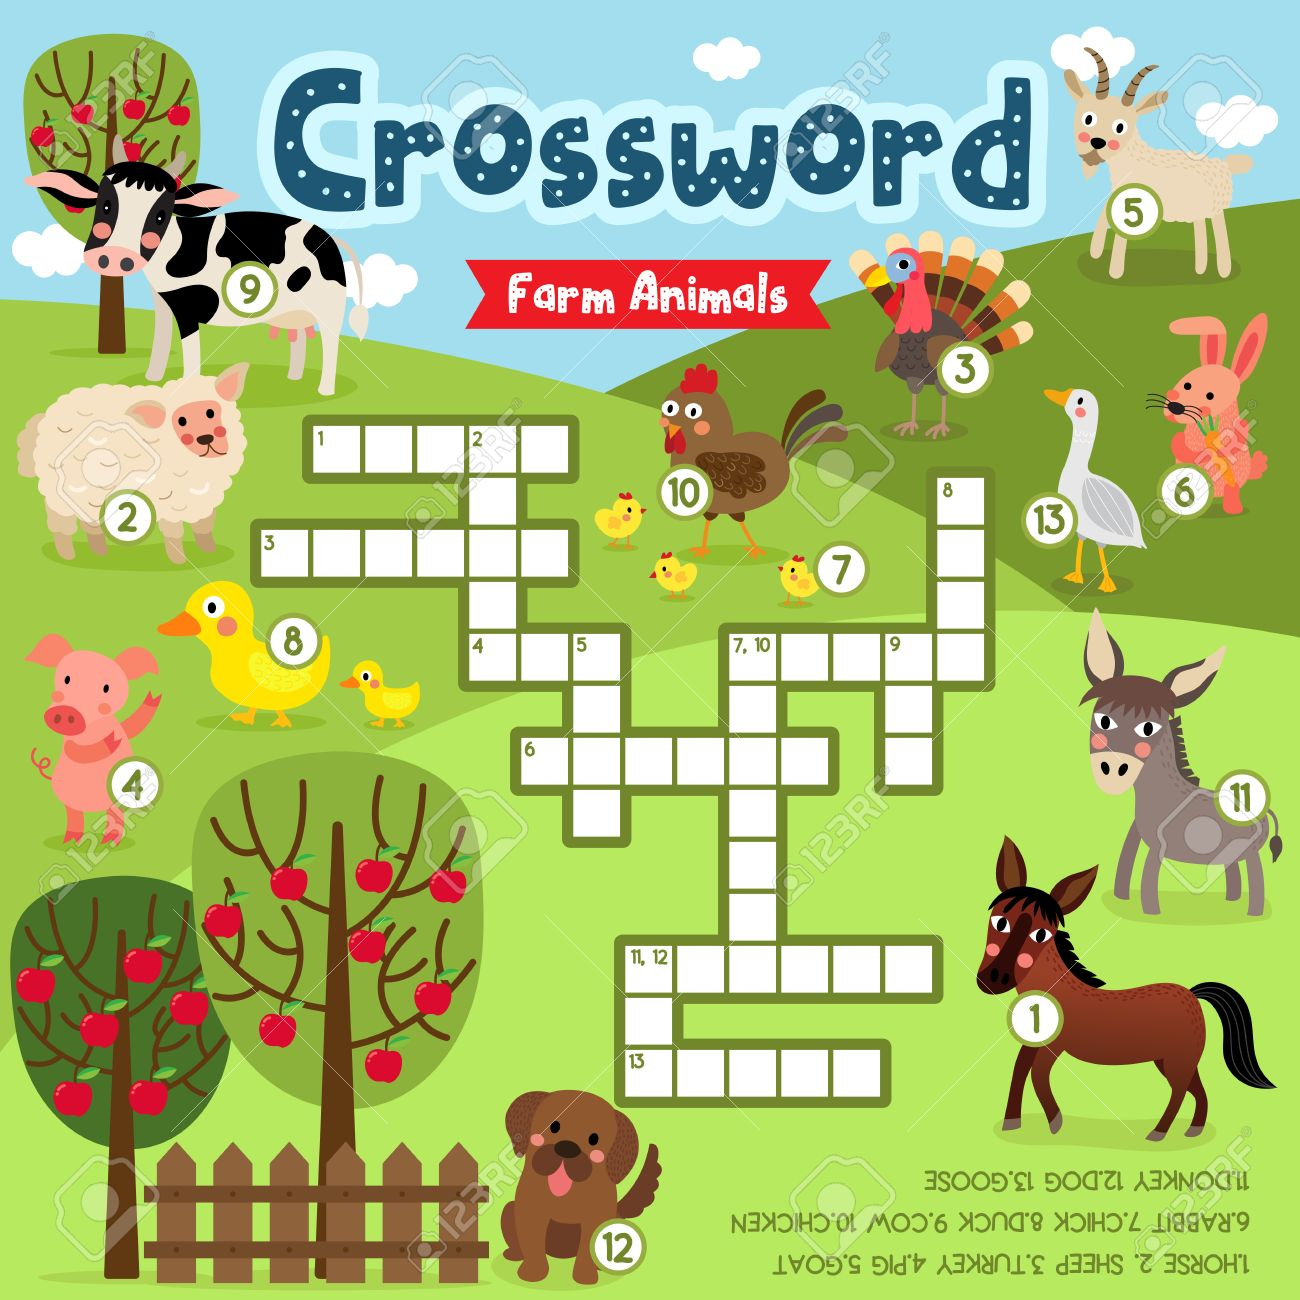 Image of: File Folder Crosswords Puzzle Game Of Farm Animals For Preschool Kids Activity Worksheet Colorful Printable Version Vector 123rfcom Crosswords Puzzle Game Of Farm Animals For Preschool Kids Activity